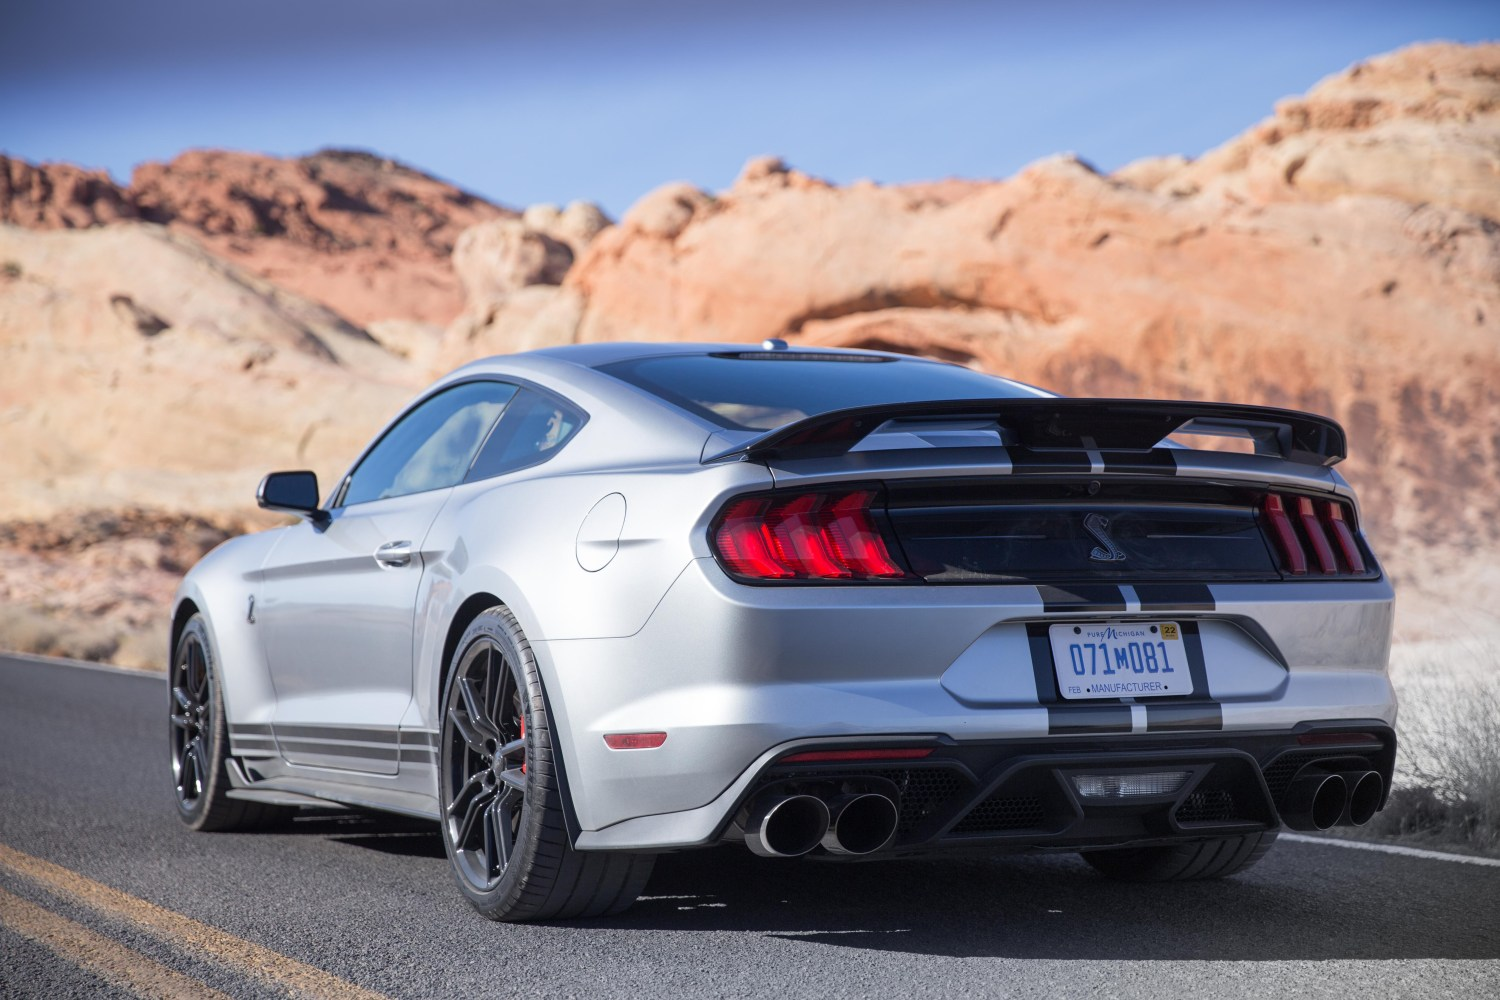 the 2020 ford shelby mustang is a